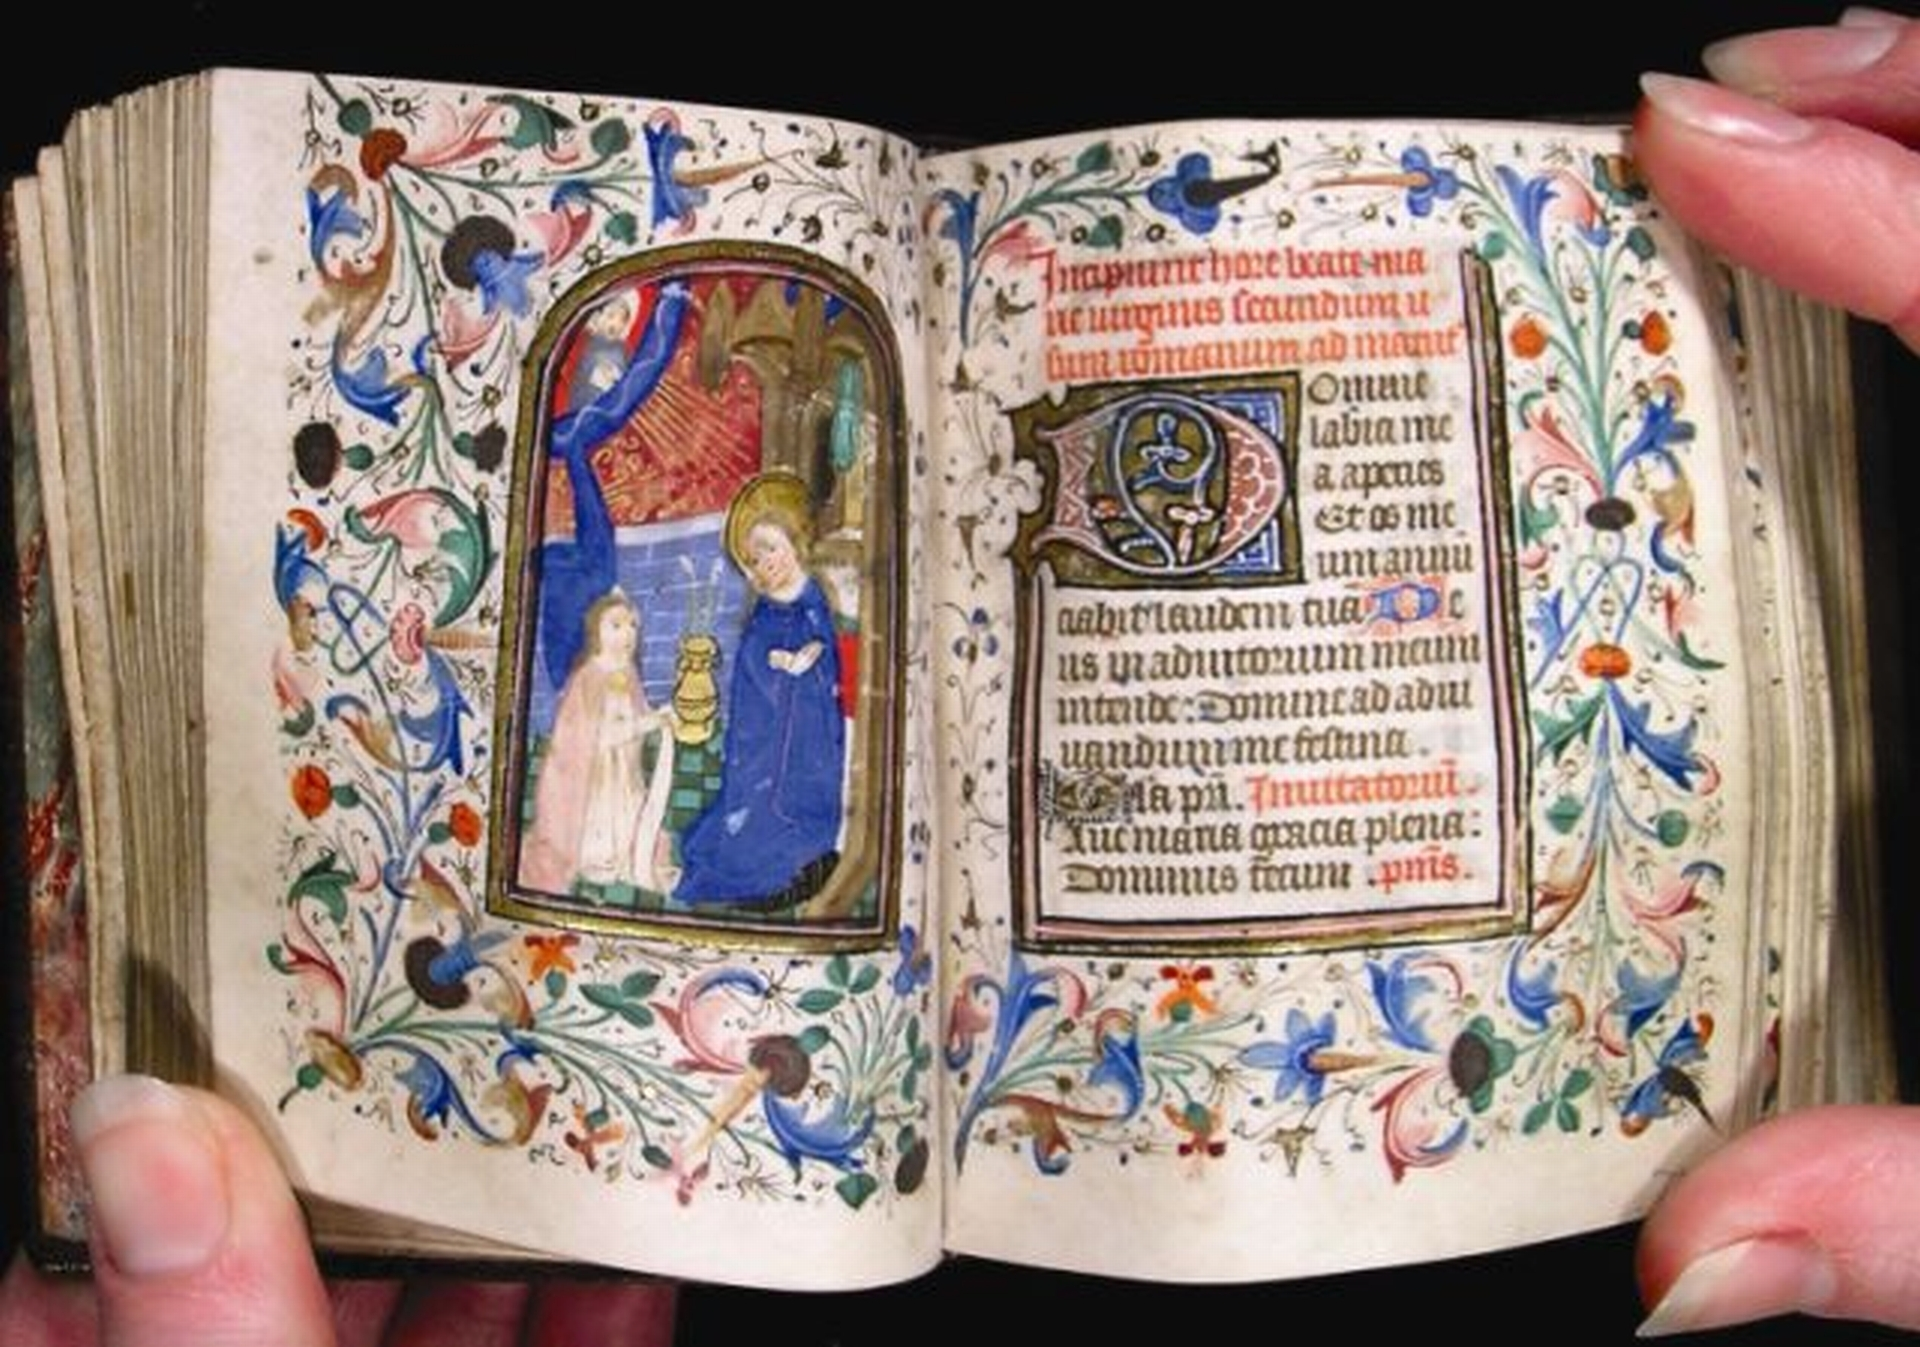 TURN-UP FOR THE BOOKS: Jean Preston's miniature book of hours